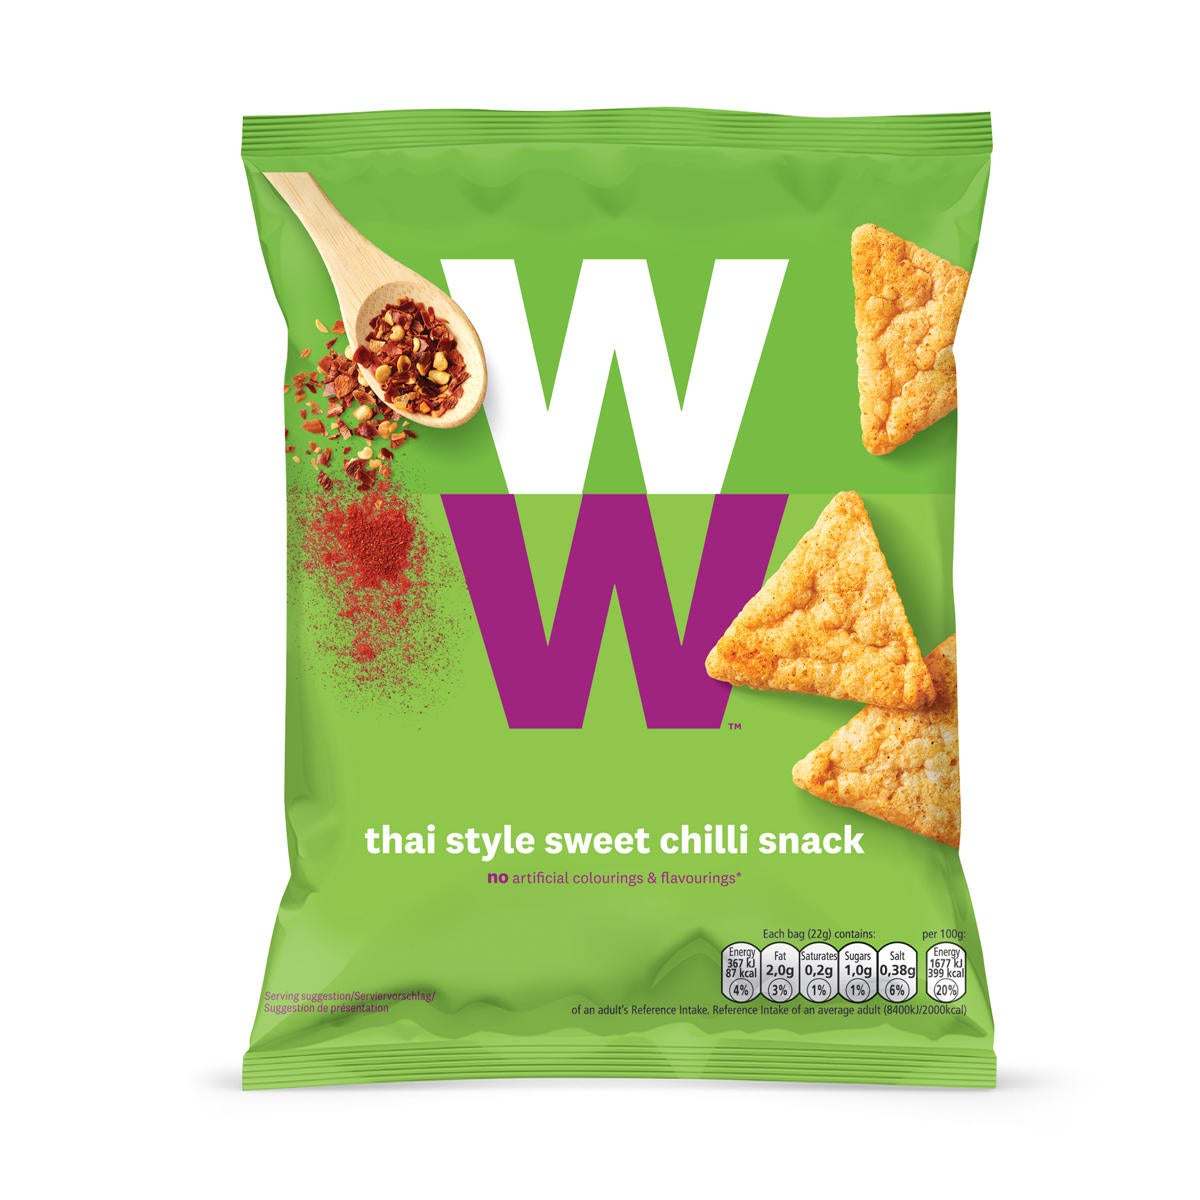 WW Crunchy potato based snack, Thai style sweet chilli flavour, baked not fried, only 2 SmartPoints values per bag, light and tasty, suitable for vegetarians